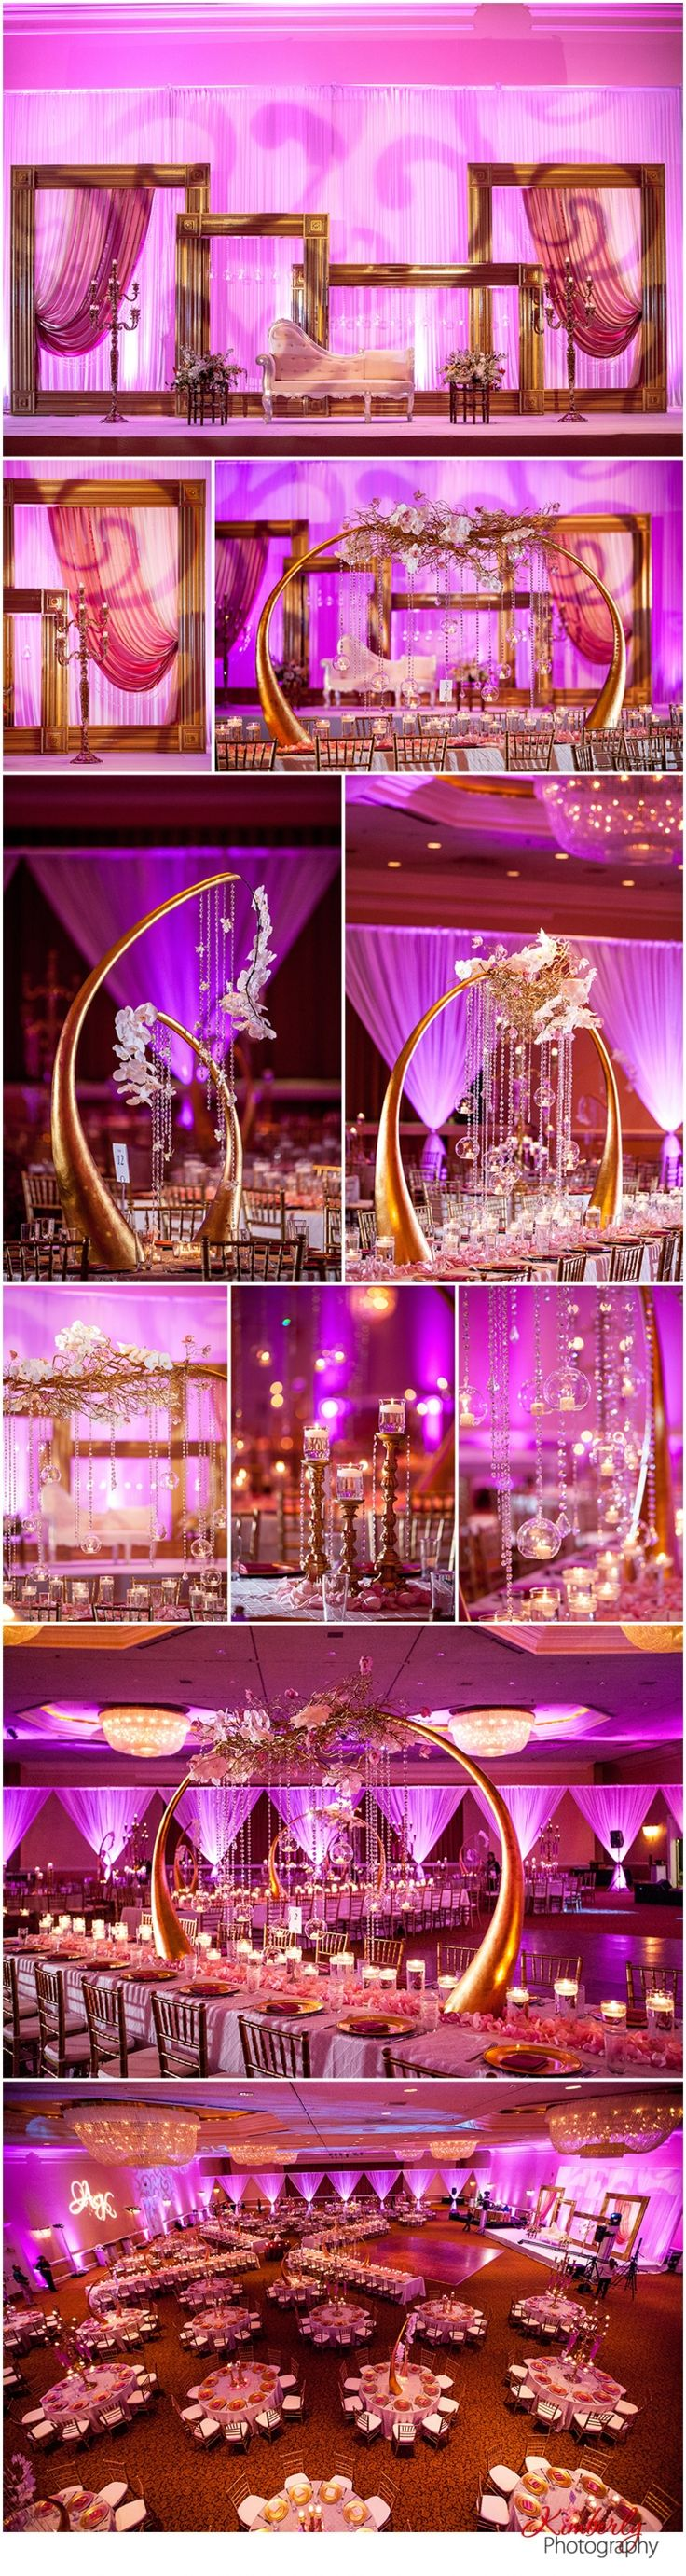 Wedding decorations for hall january 2019  best My wedding images on Pinterest  Weddings Indian weddings